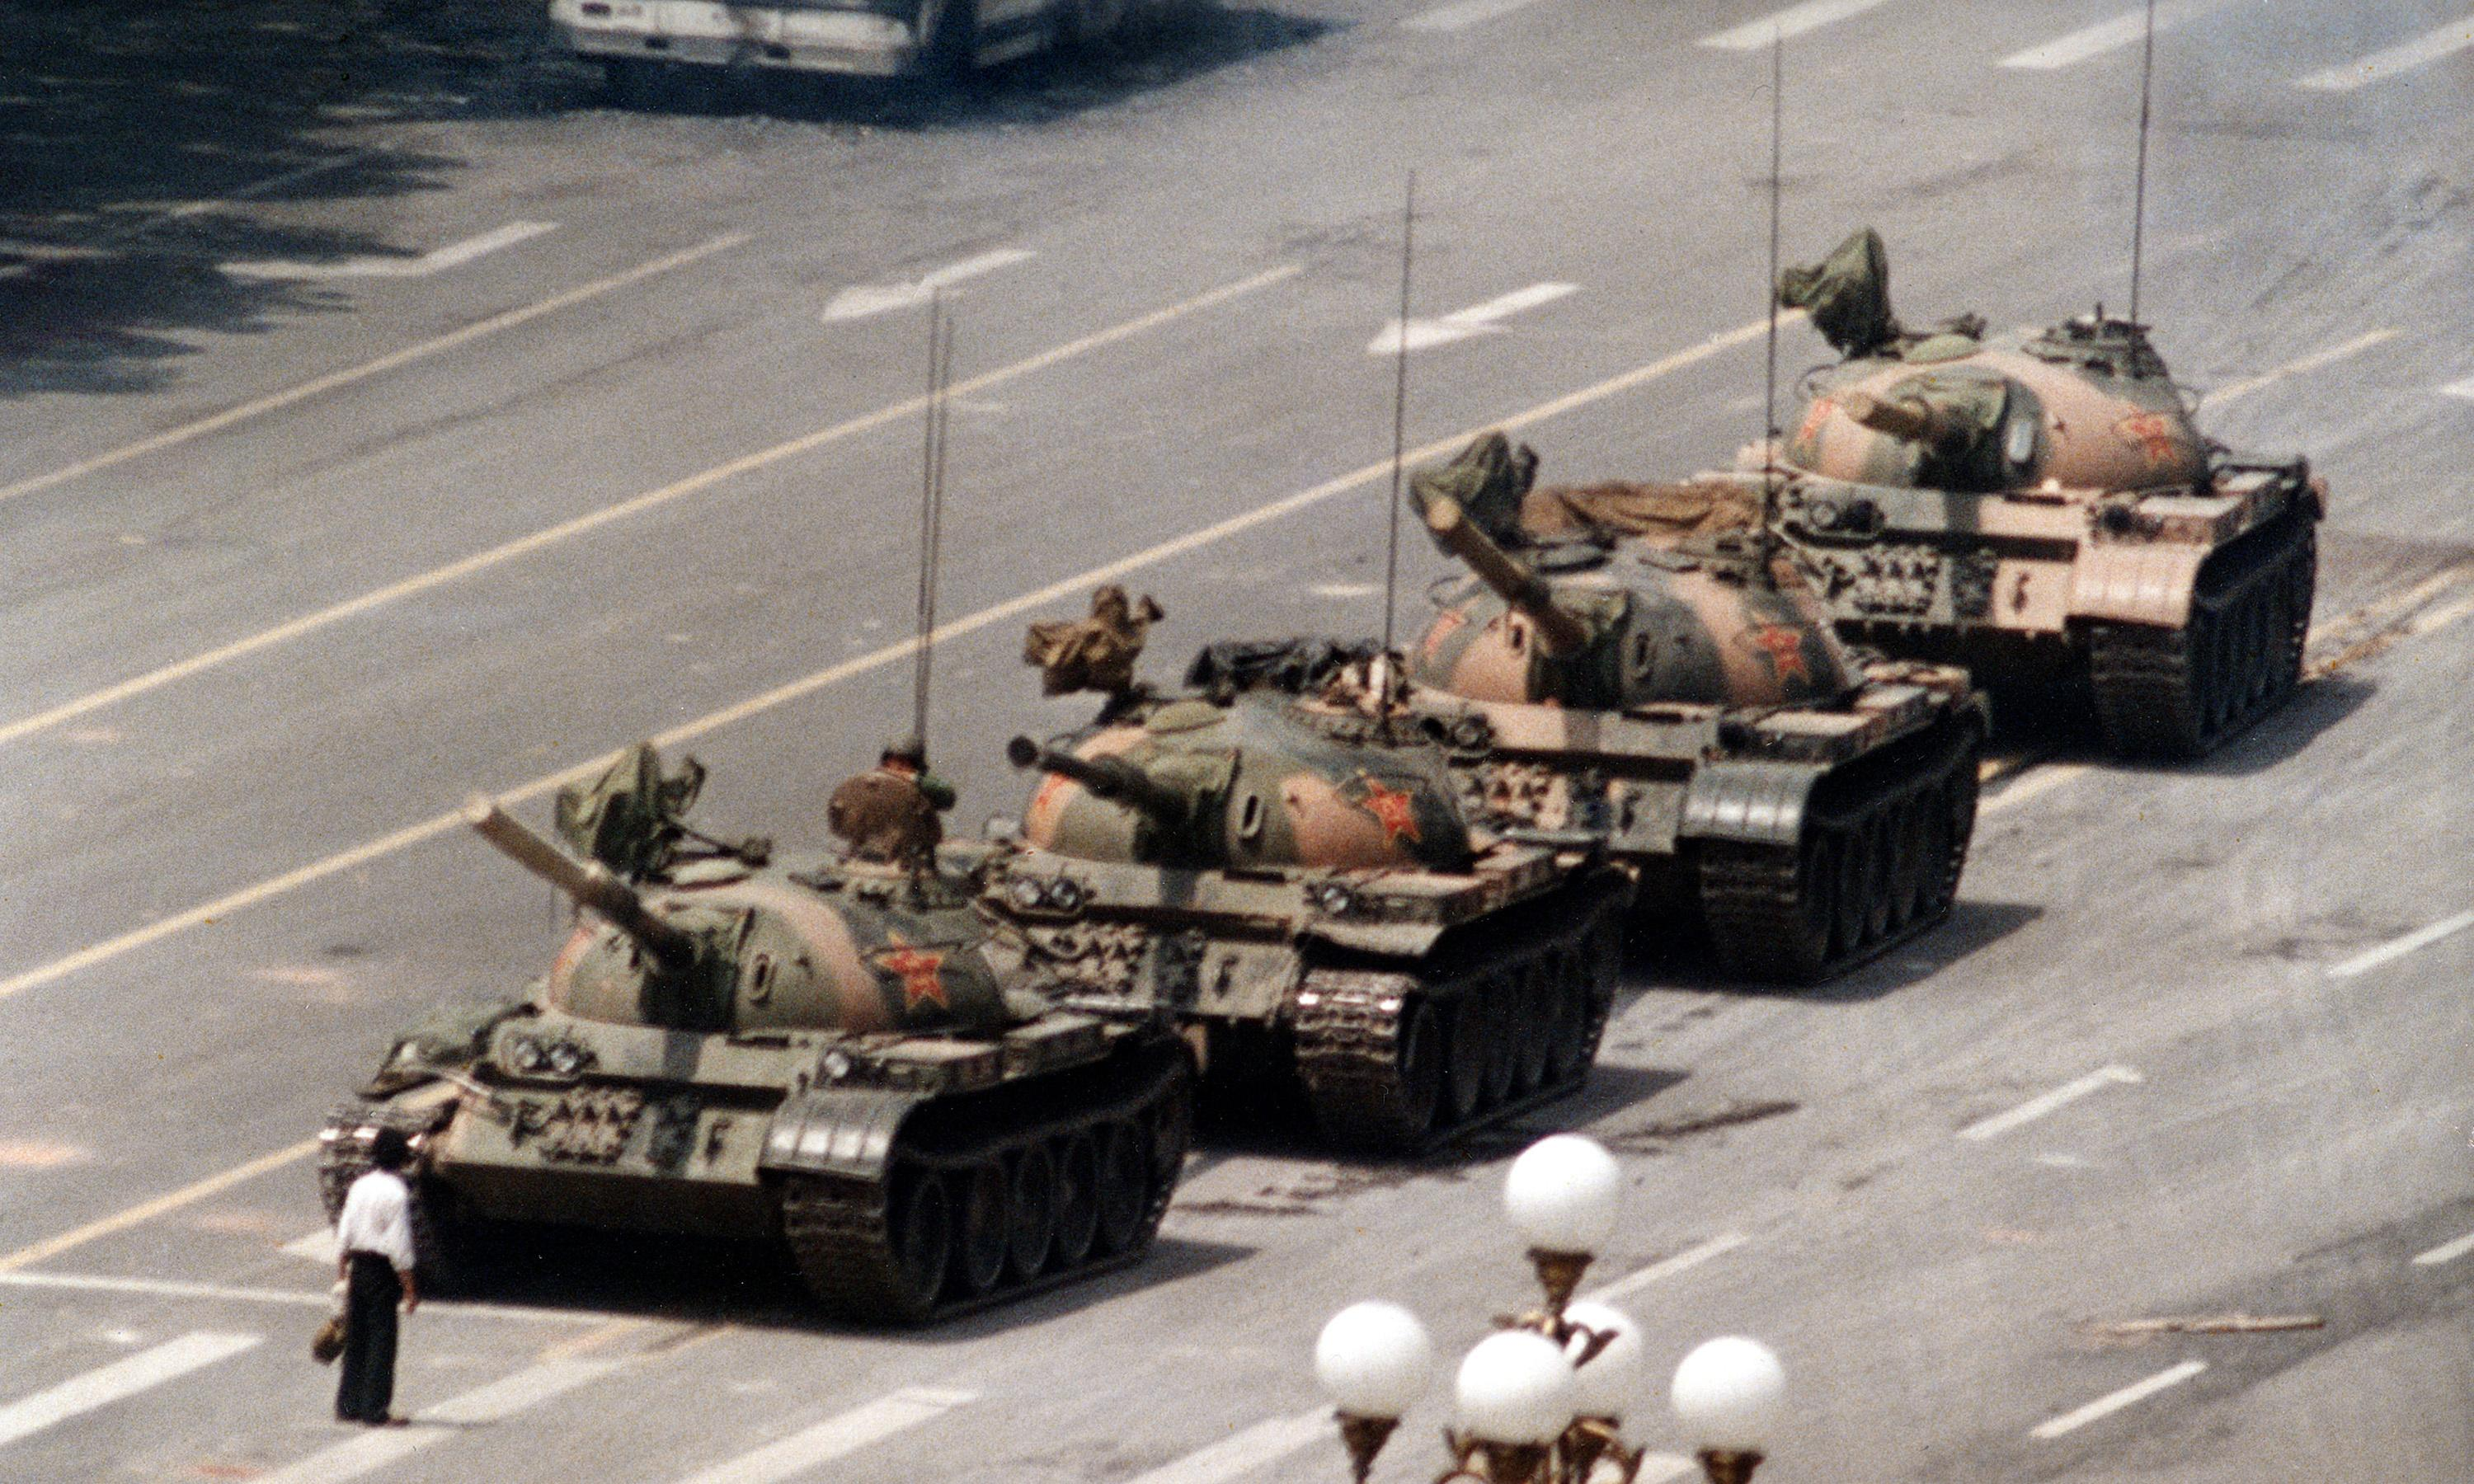 China wants us to forget the horrors of Tiananmen as it rewrites its history